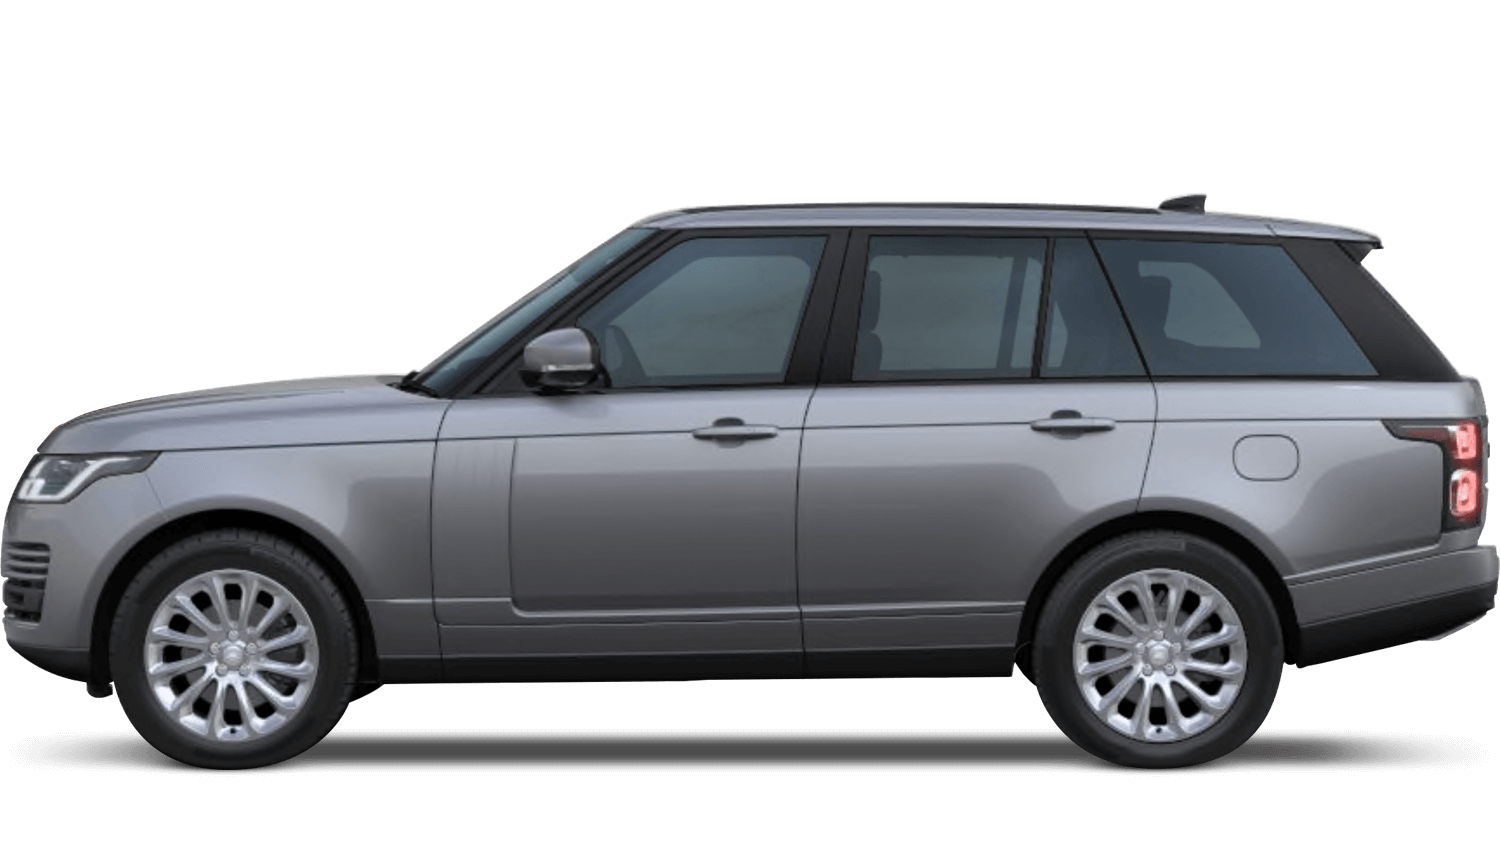 Land Rover Range Rover Vogue Finance Available Land Rover